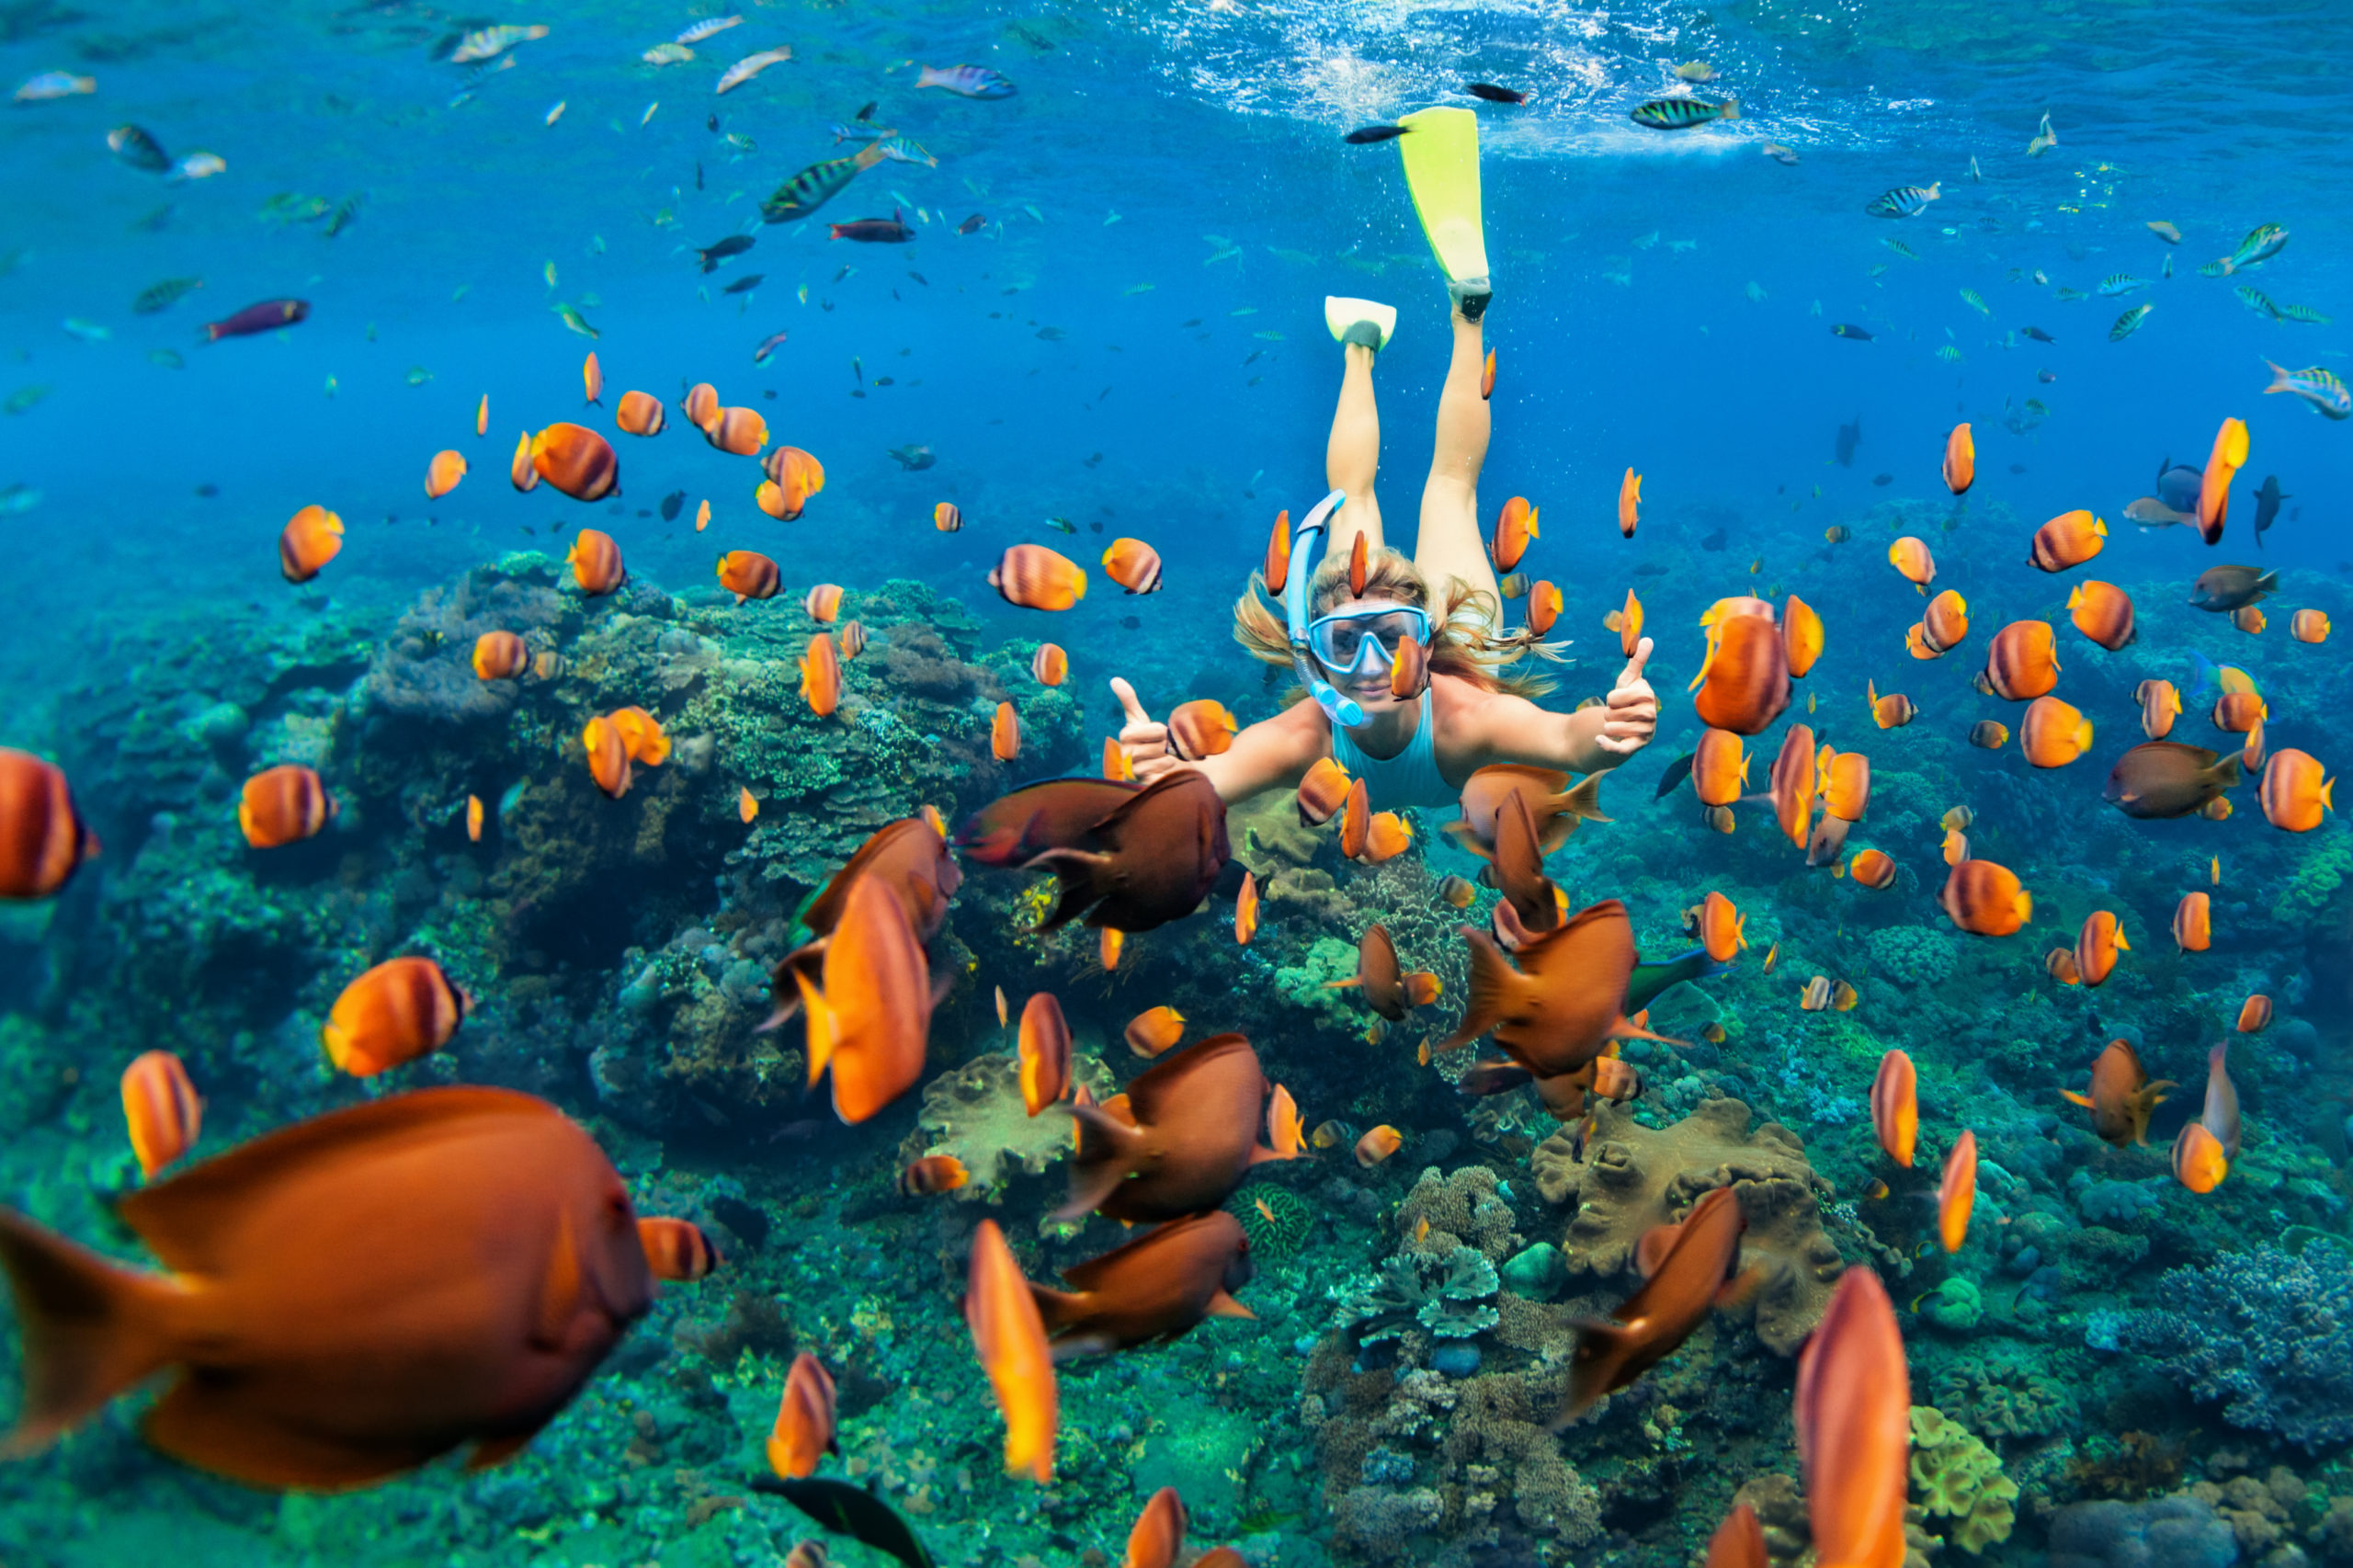 Girl snorkeling underwater among colourful fishes